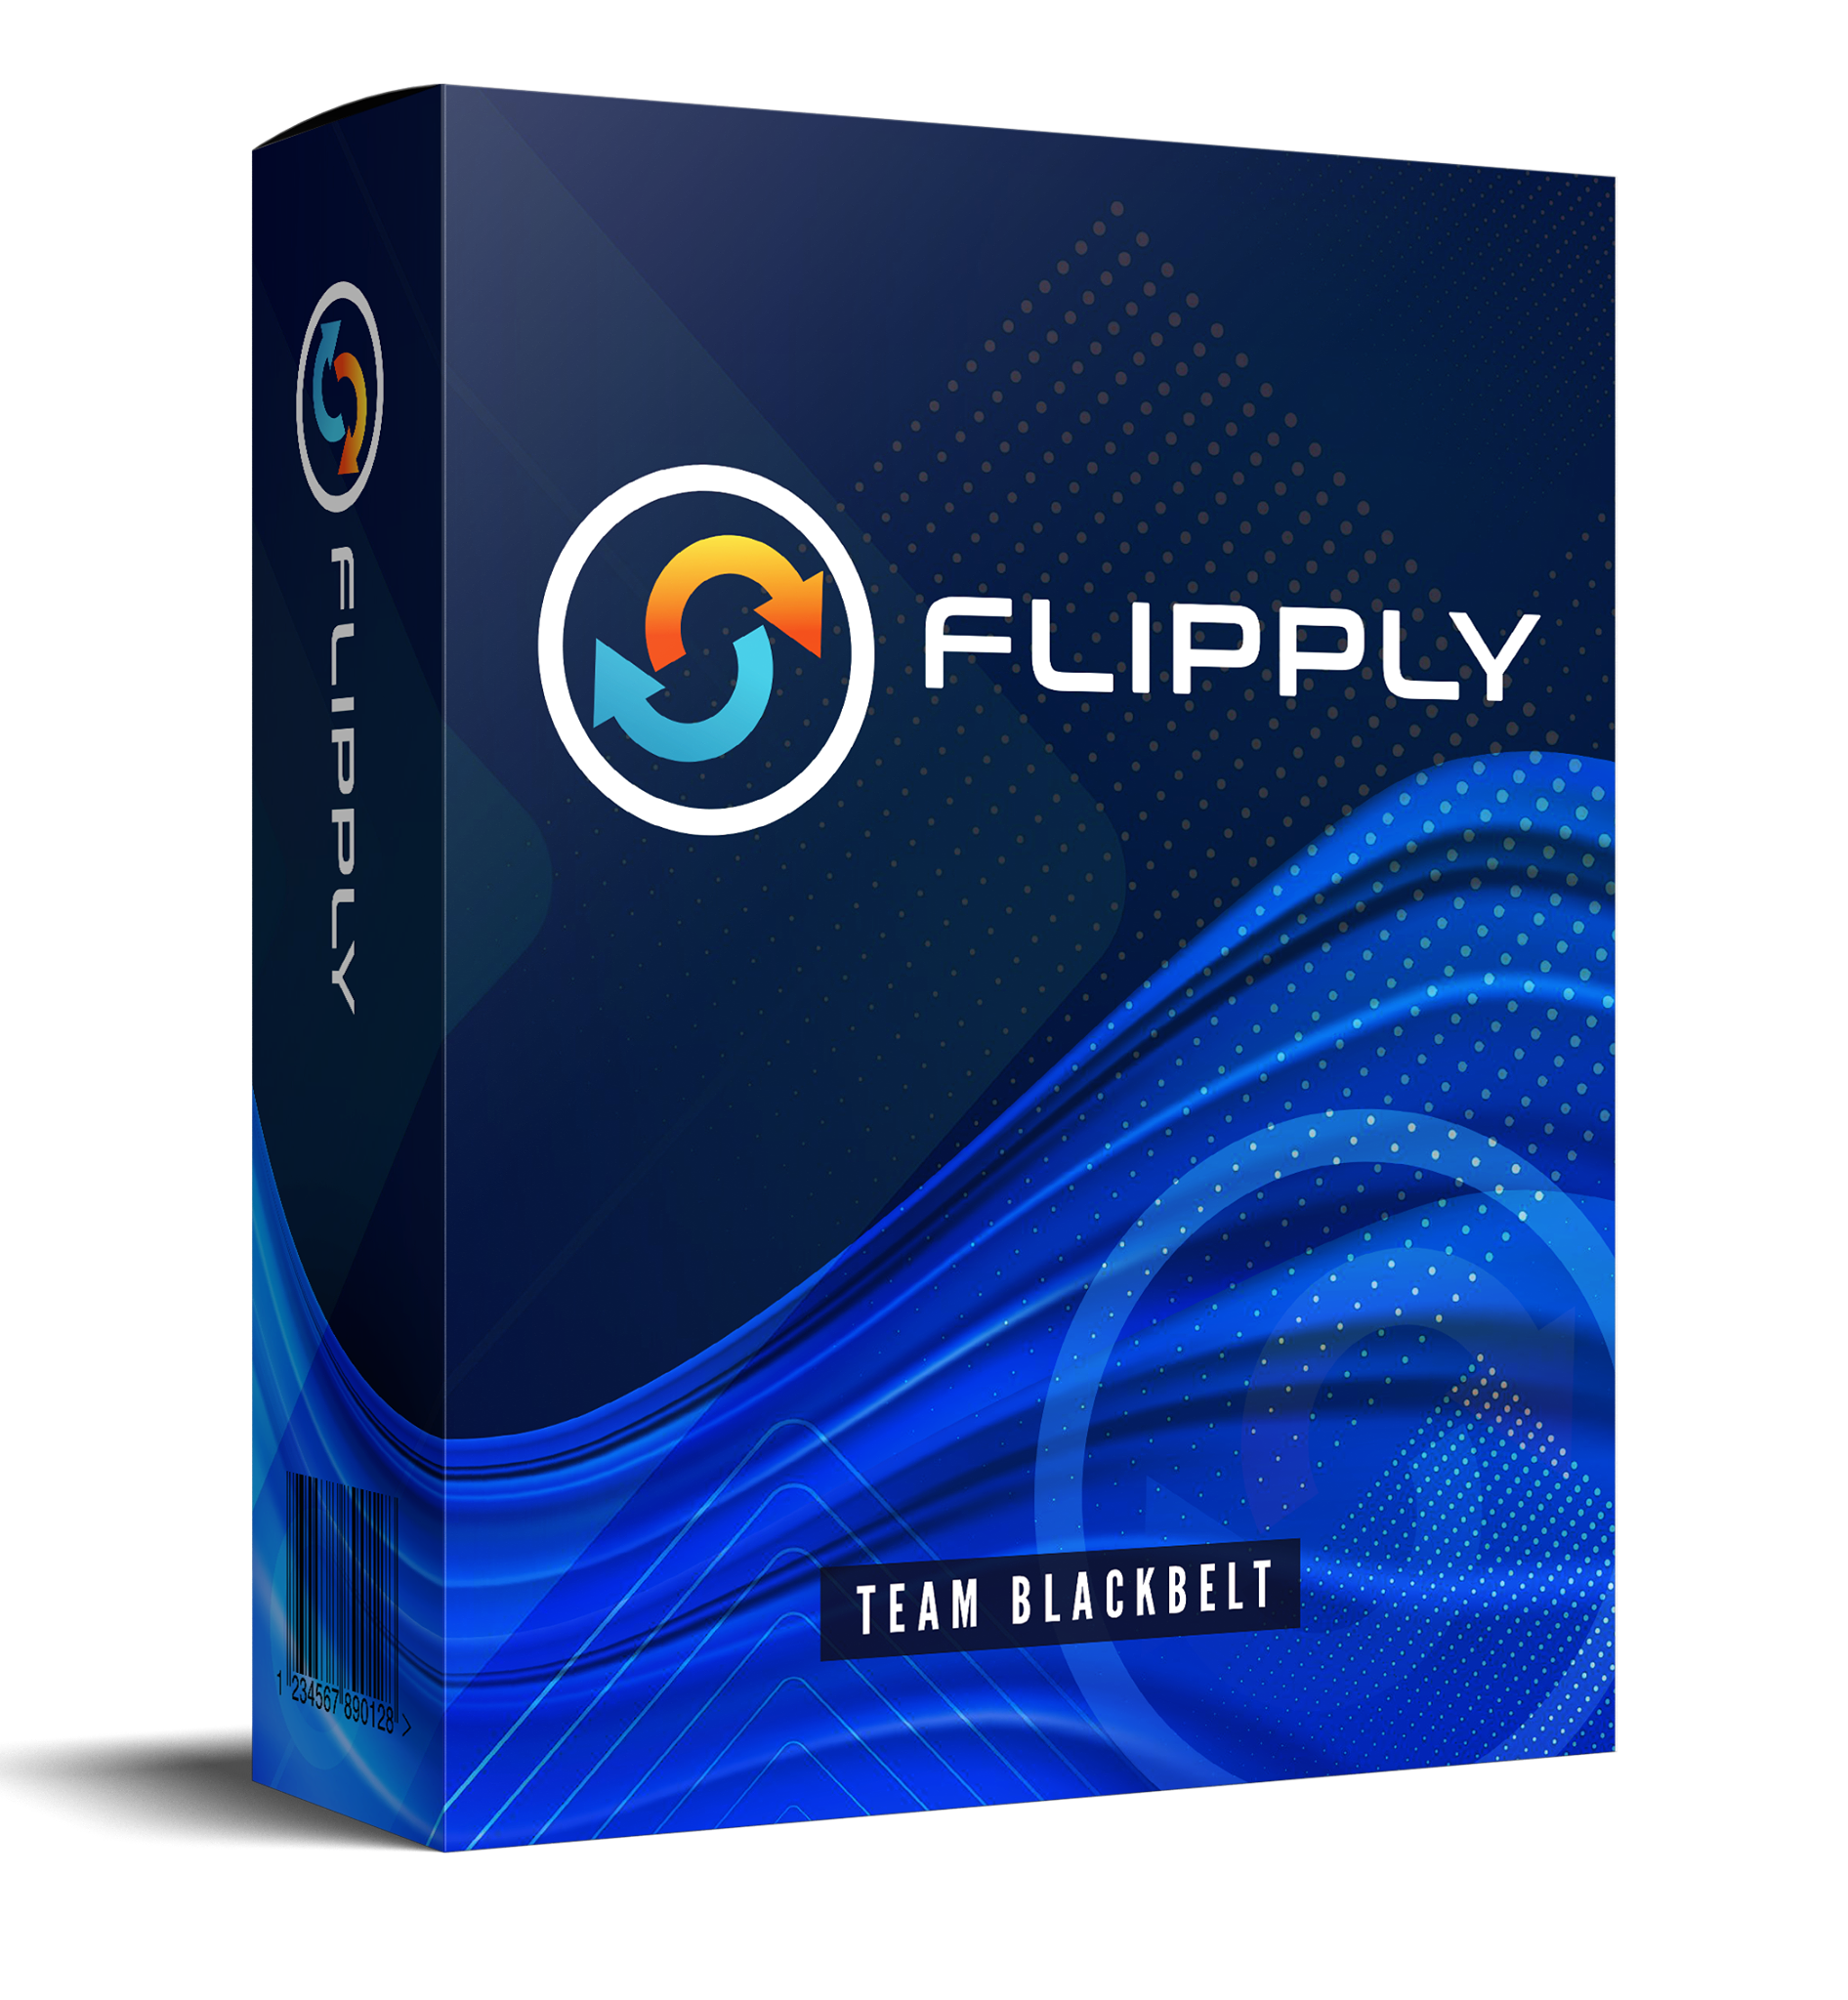 FLIPPLY Review